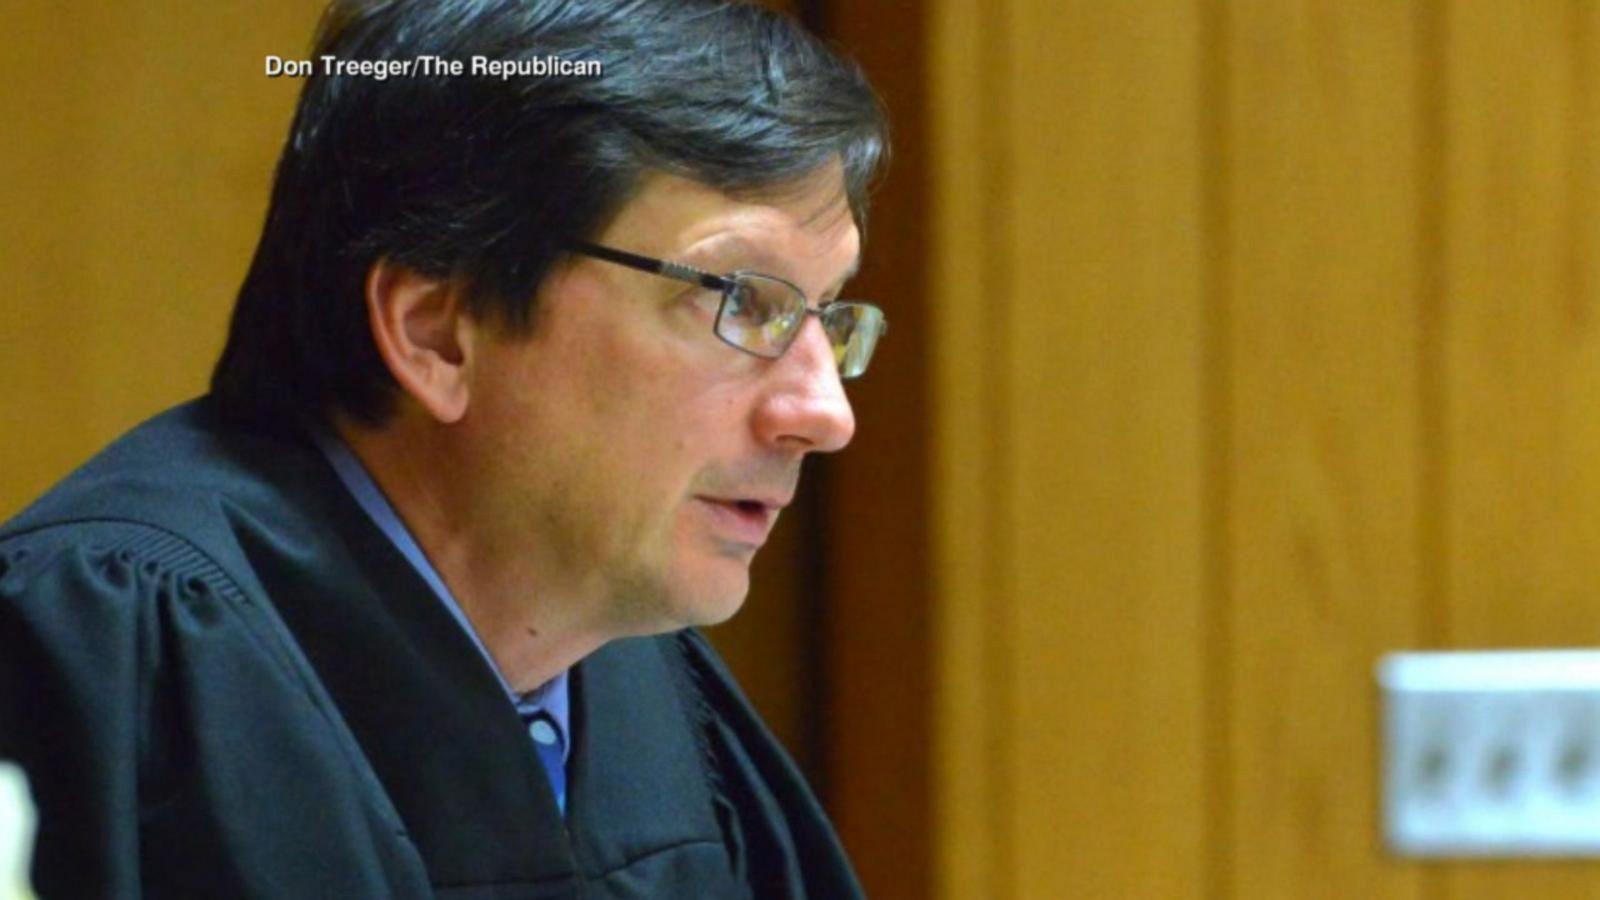 VIDEO: Calls for Judge's Removal After Sentencing of Teen in Sex Assault